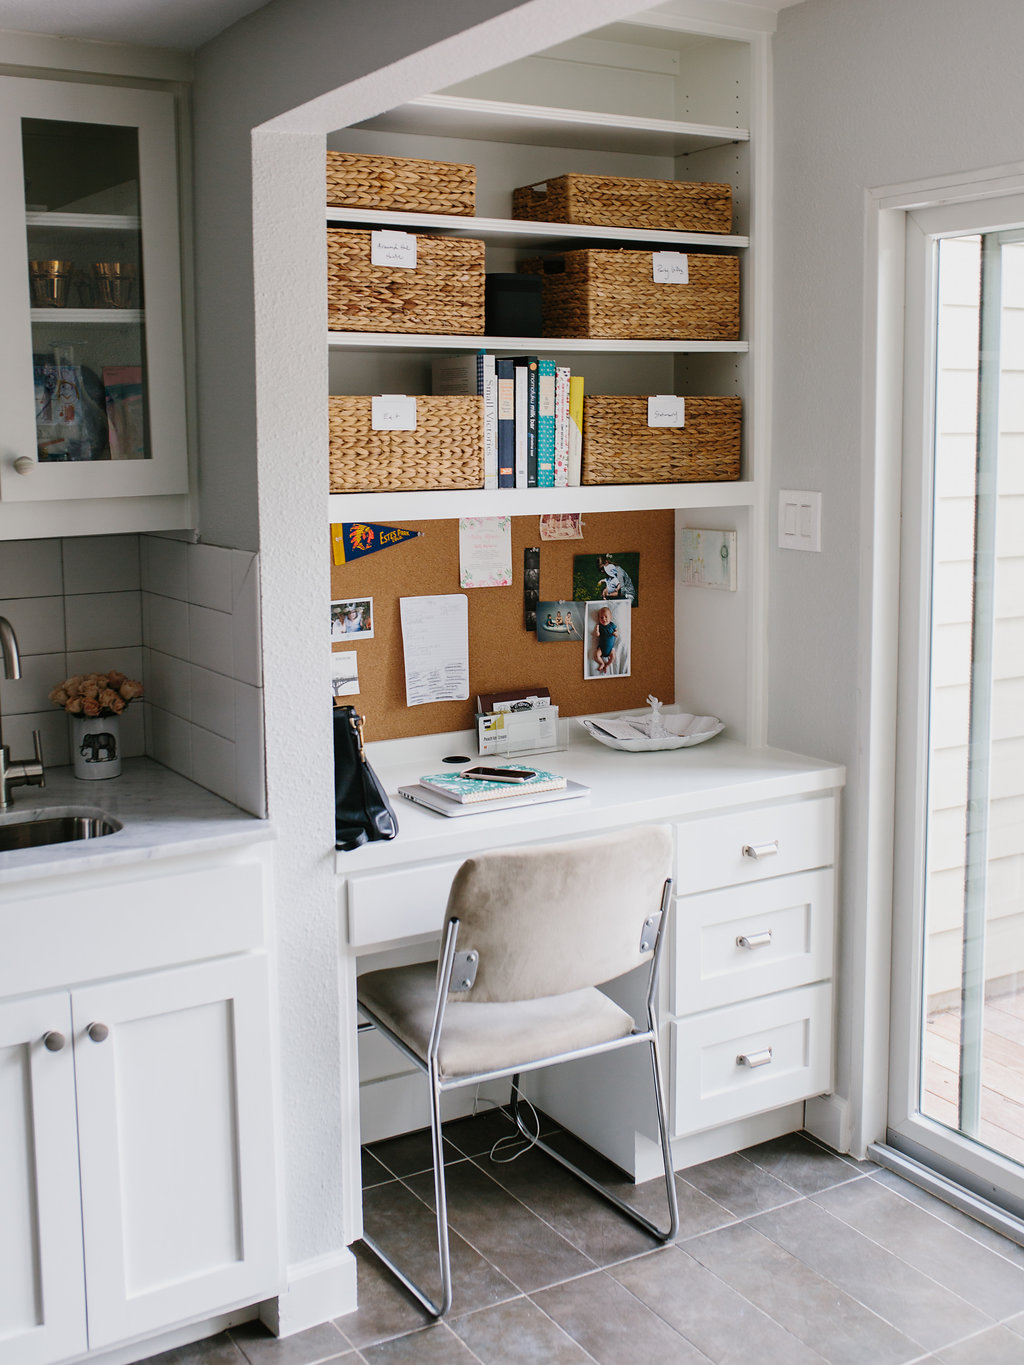 kitchen office nook.  nook jen i love how you created this nook within your kitchen and well it  flows with the space any other suggestions for people wanting a similar desk  inside kitchen office nook